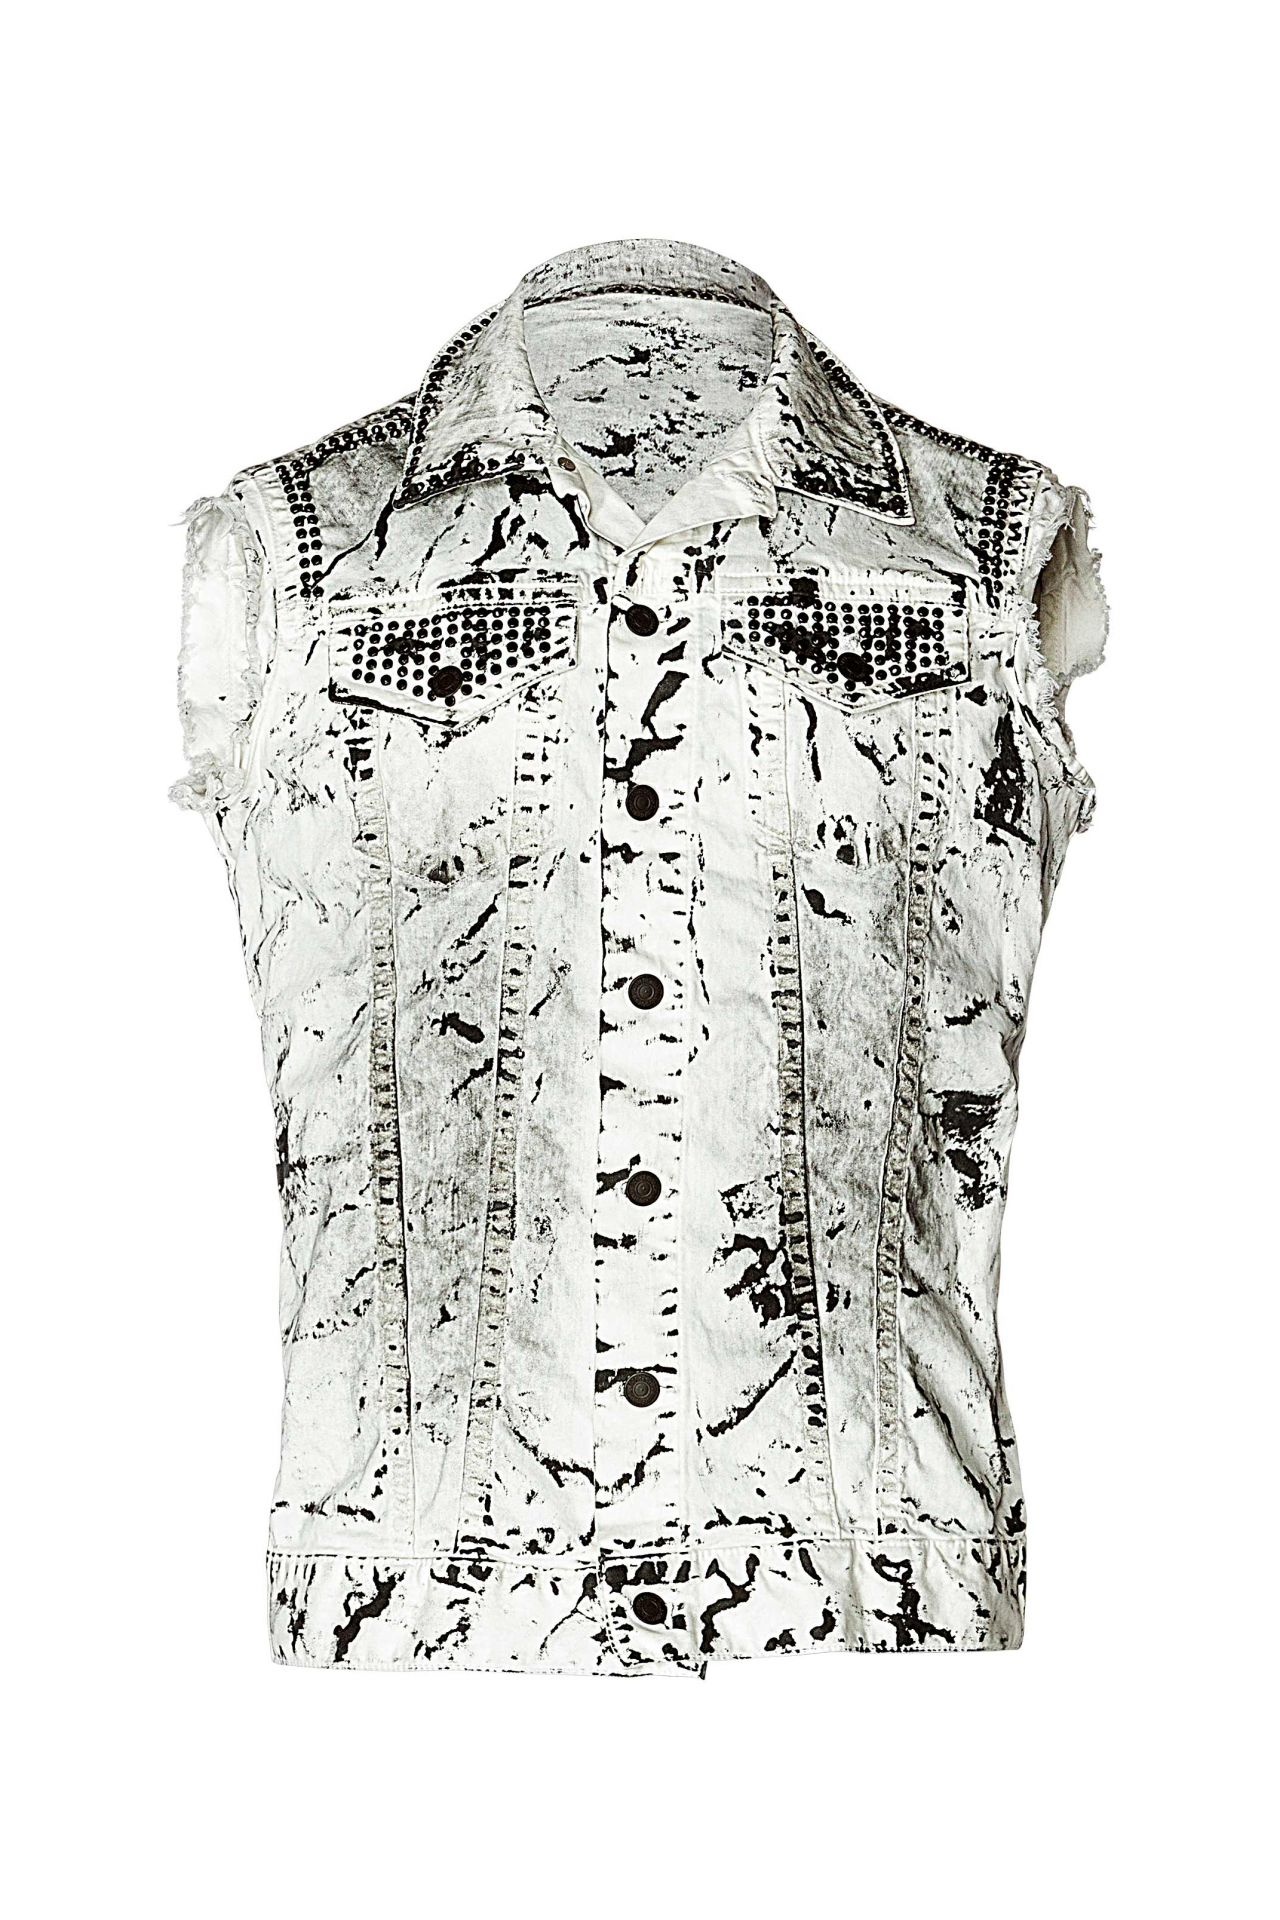 RAW EDGE VEST IN WHITE ICE WITH CRYSTALS